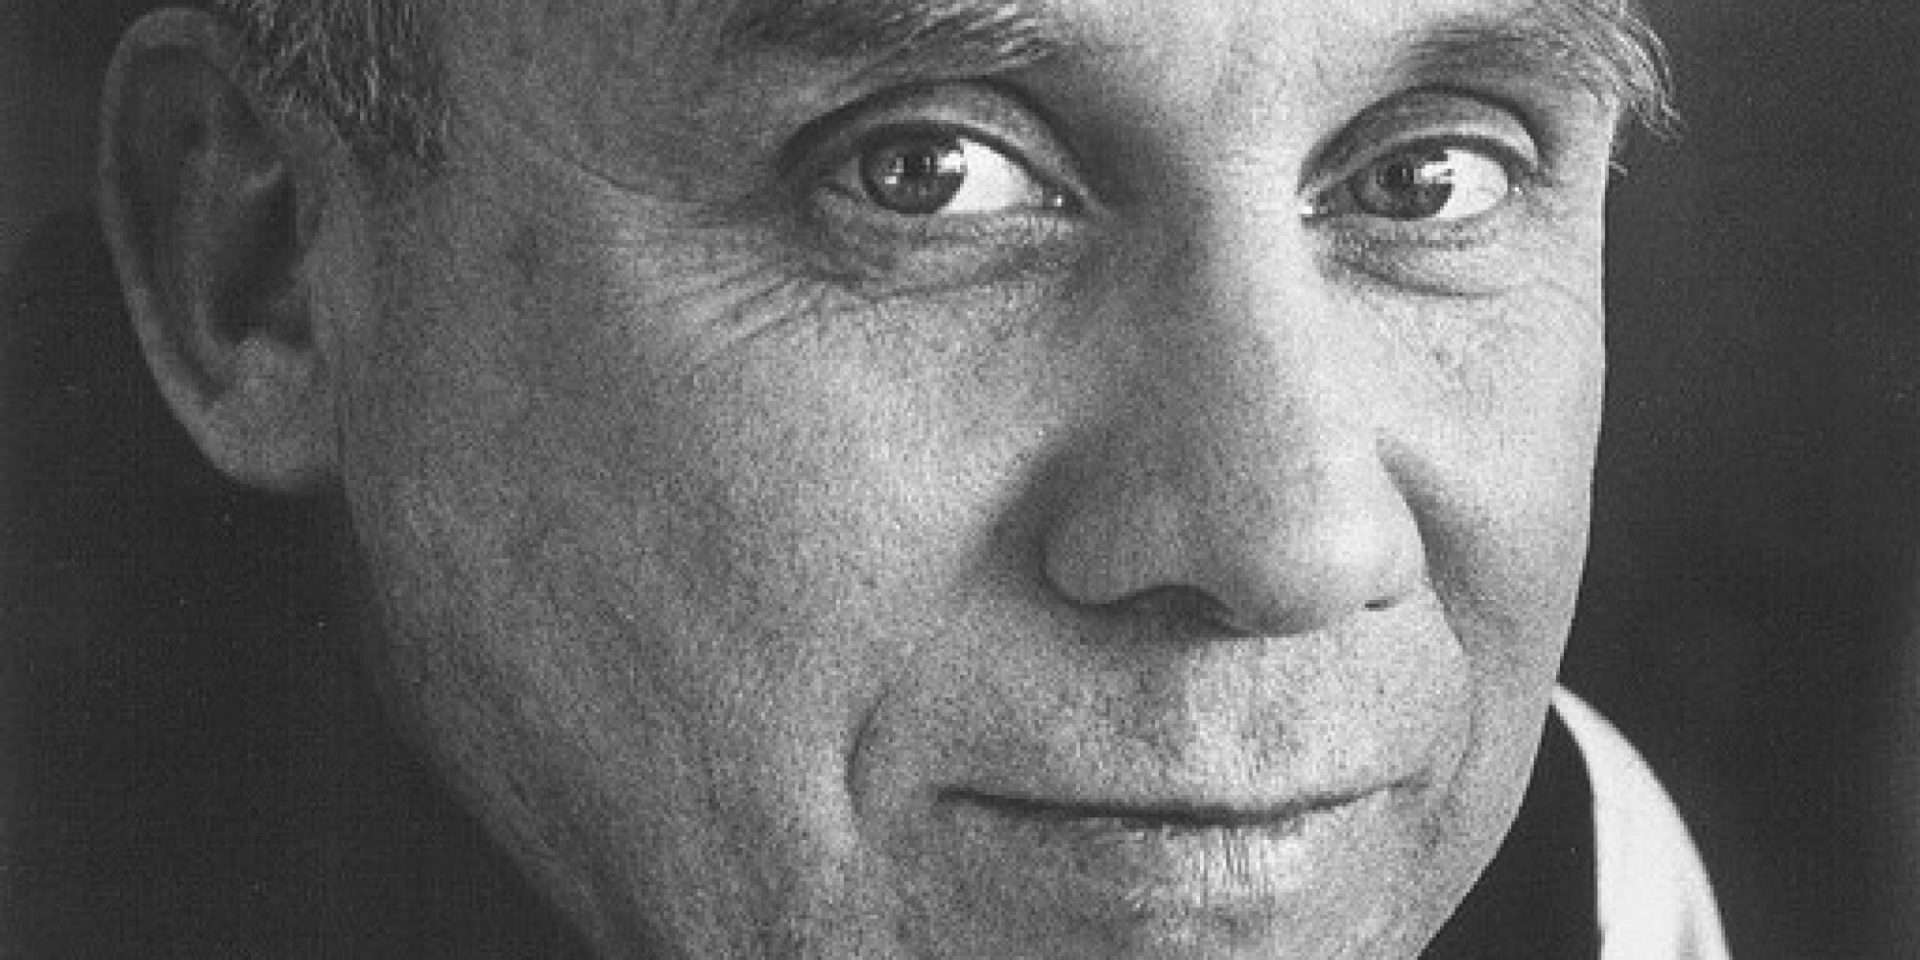 Thomas Merton's illicit affair and the weakness of 60s Zen Catholicism